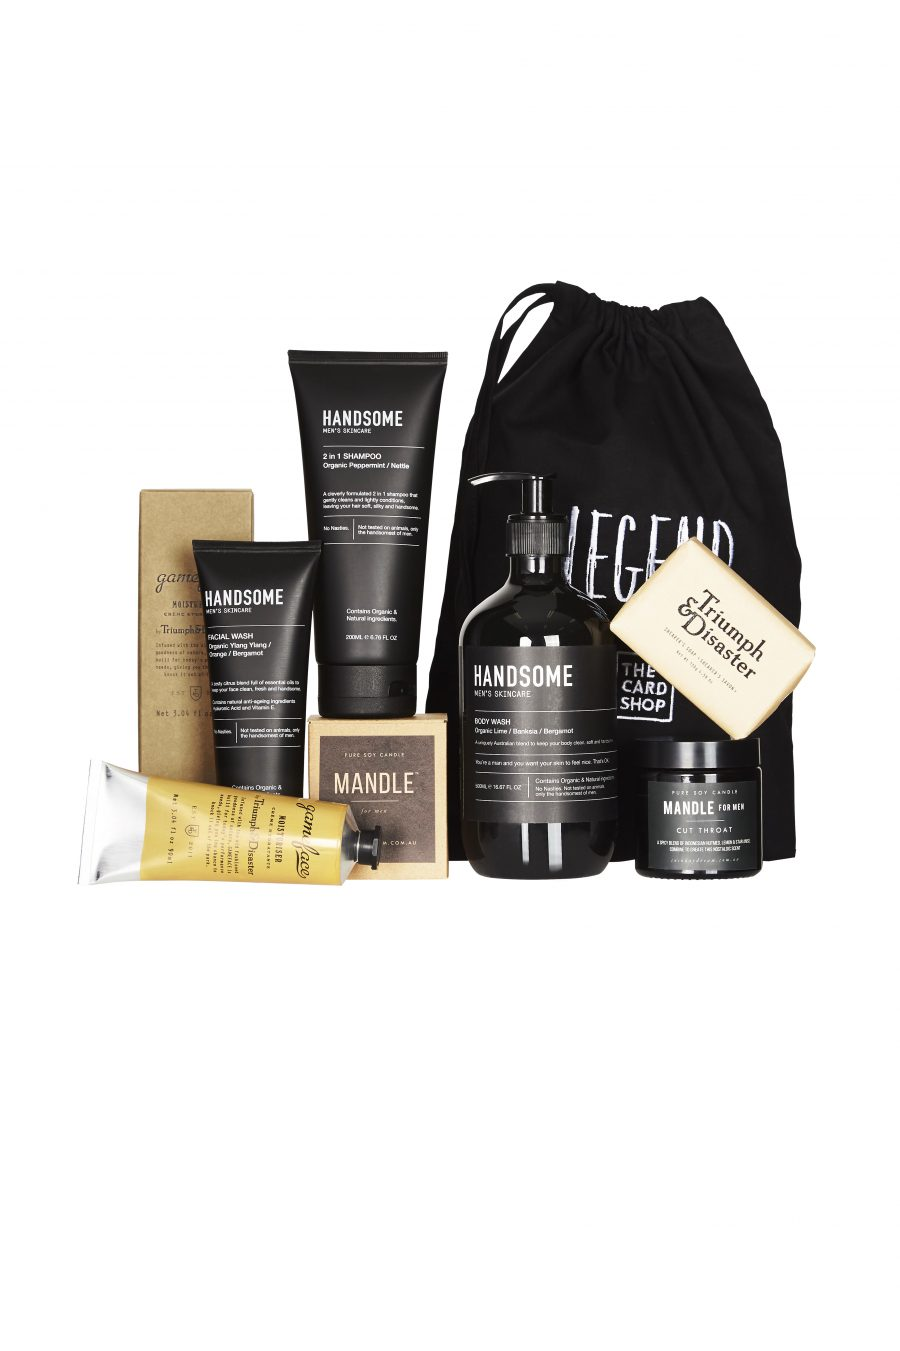 Fathers Day Last Minute Gift Ideas The Well Groomed Legend 155